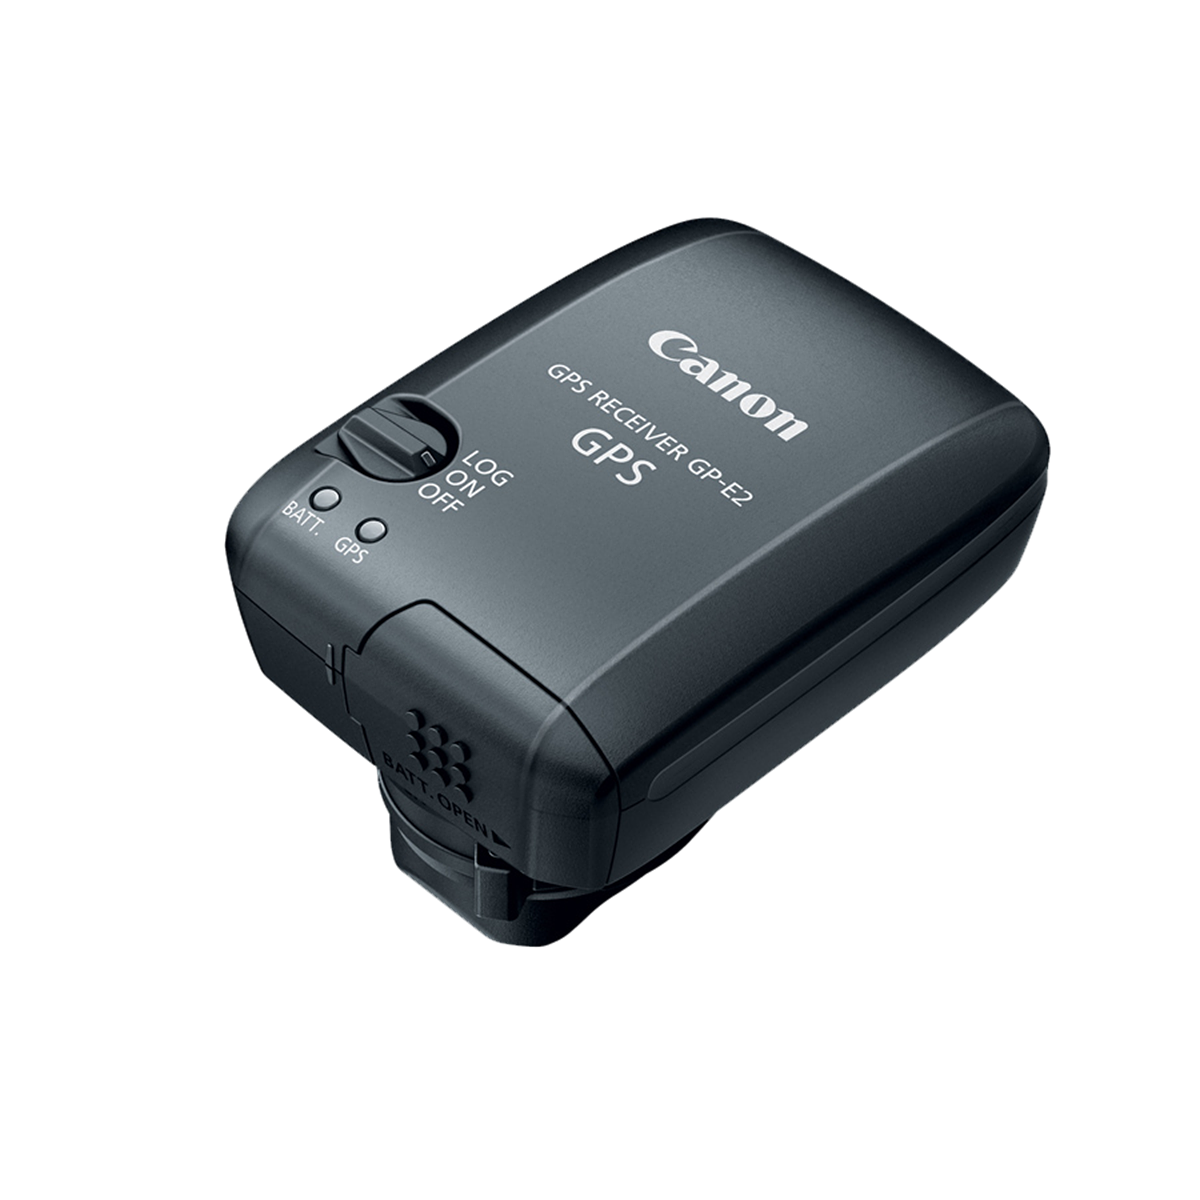 Canon GPS receiver GP-E2 firmware 2 0 adds T6i/T6s (760D/750D) and